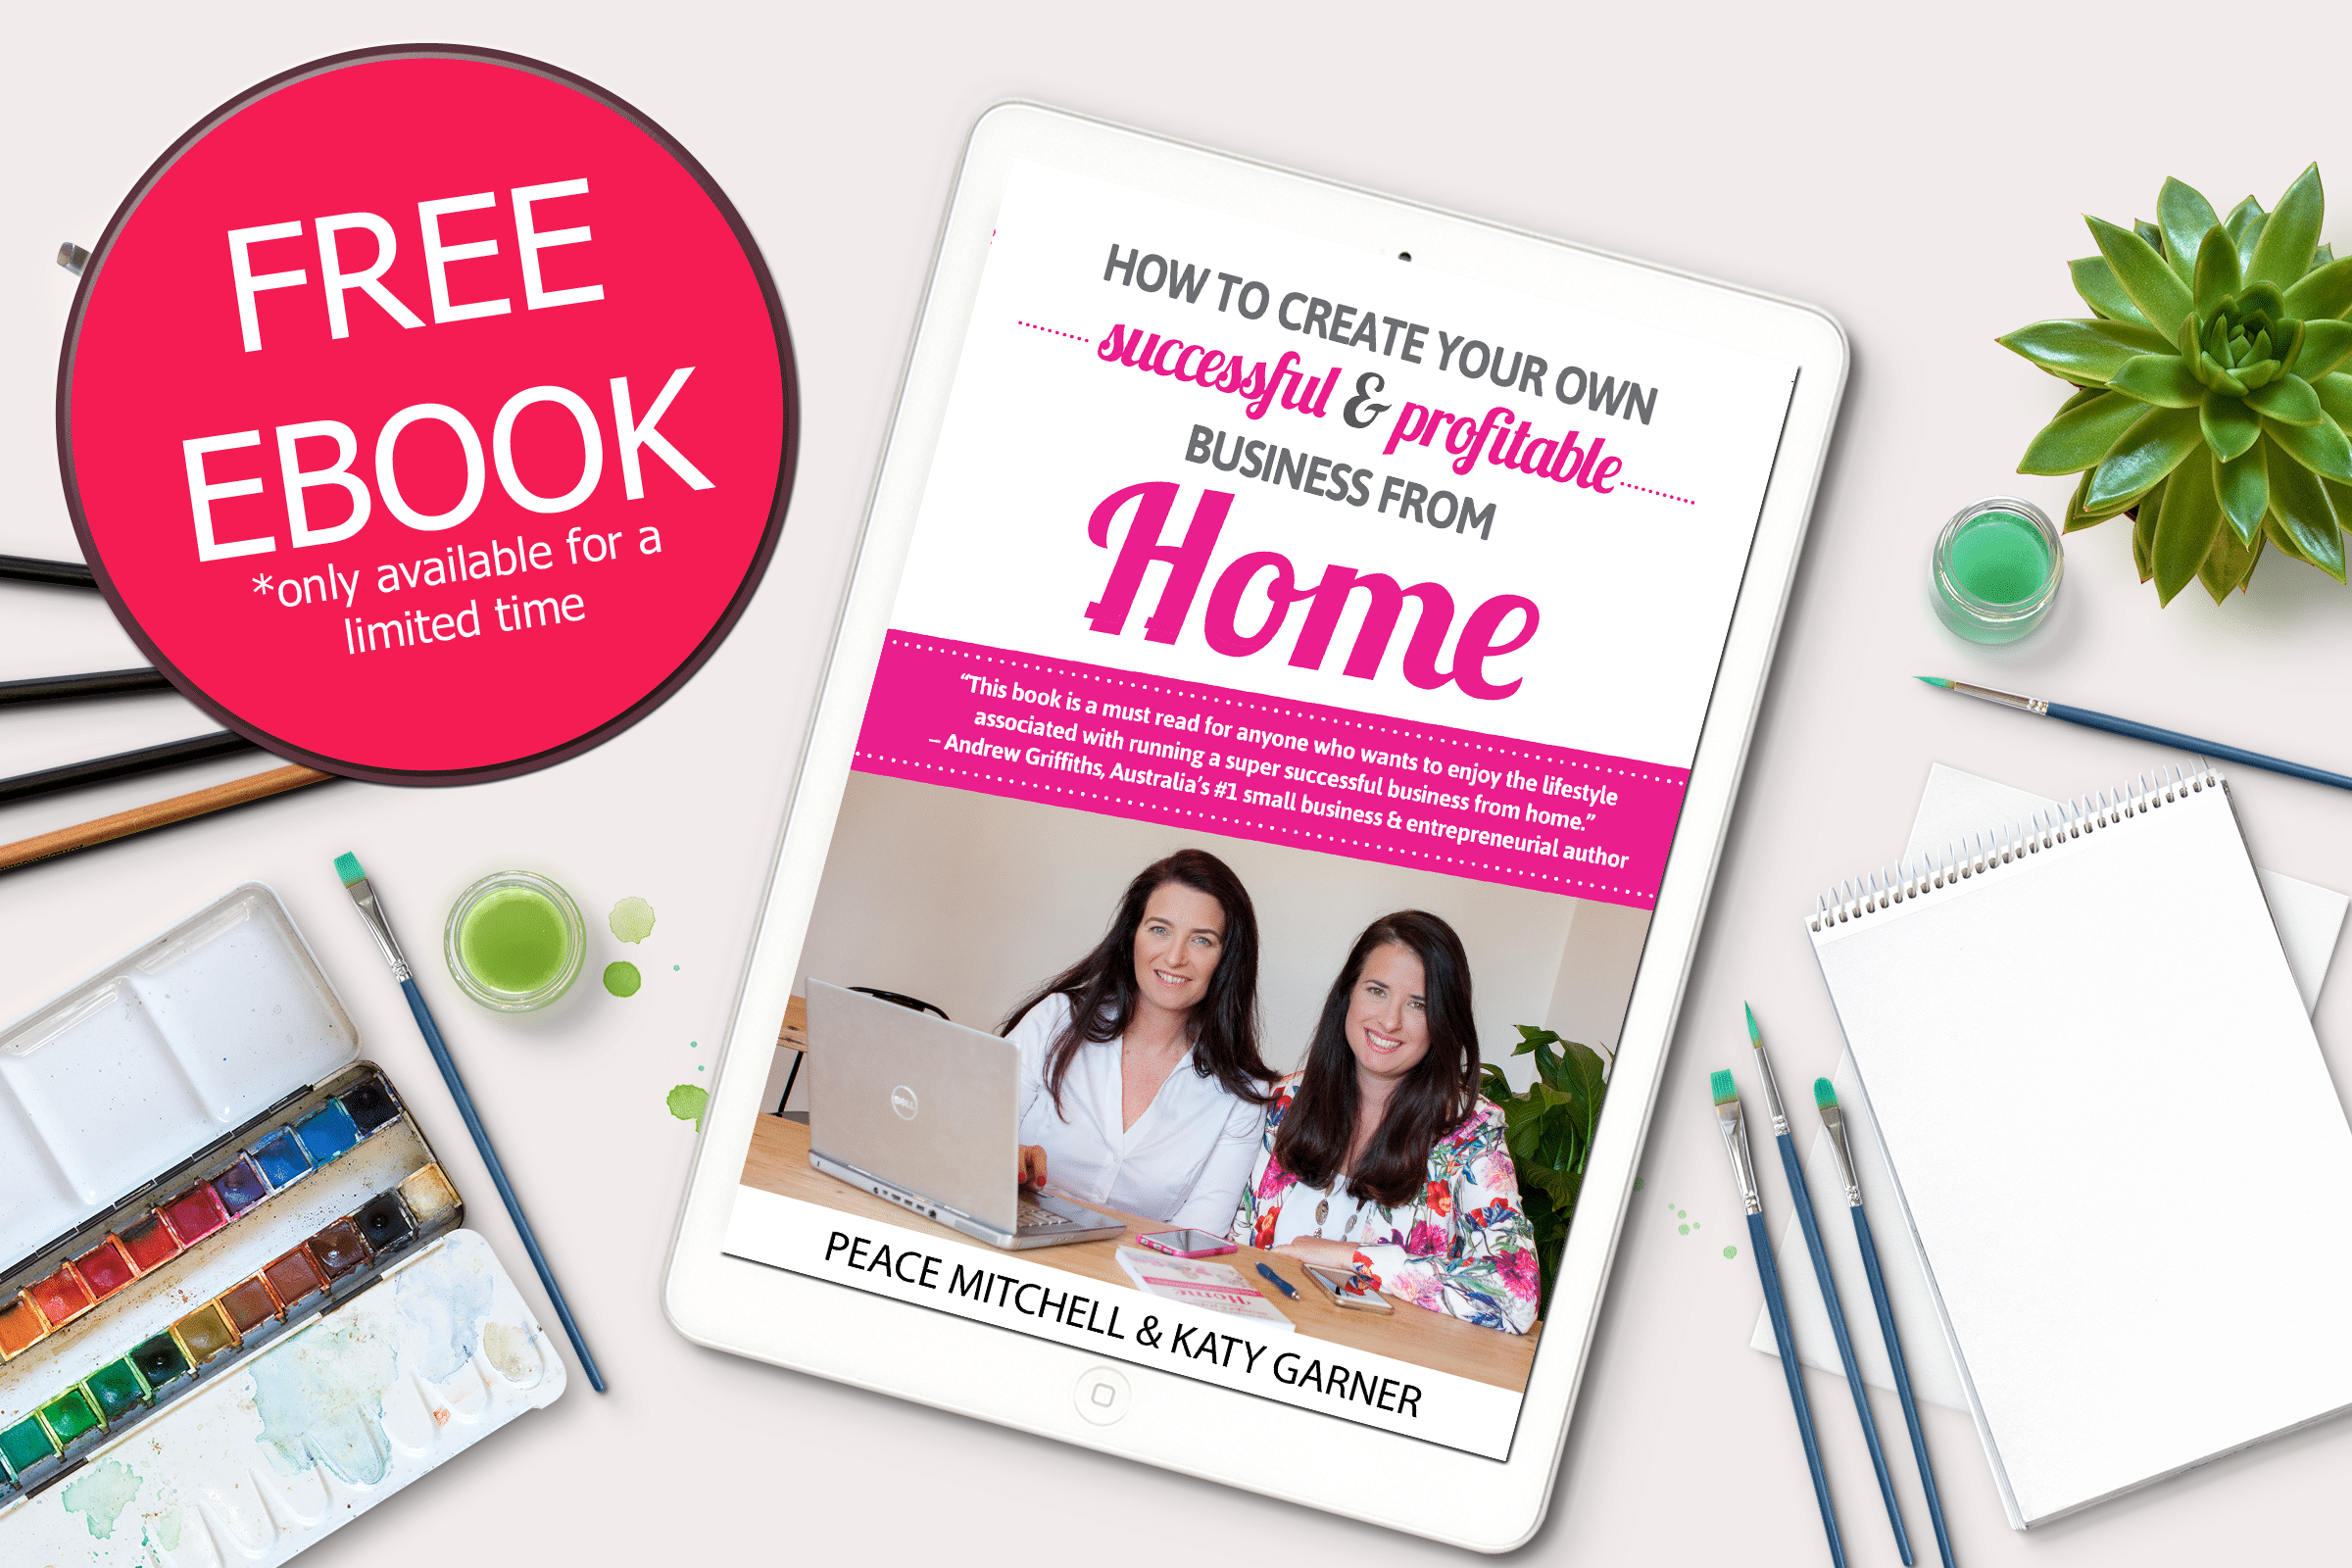 Your FREE copy of 'How to create your own business from home'